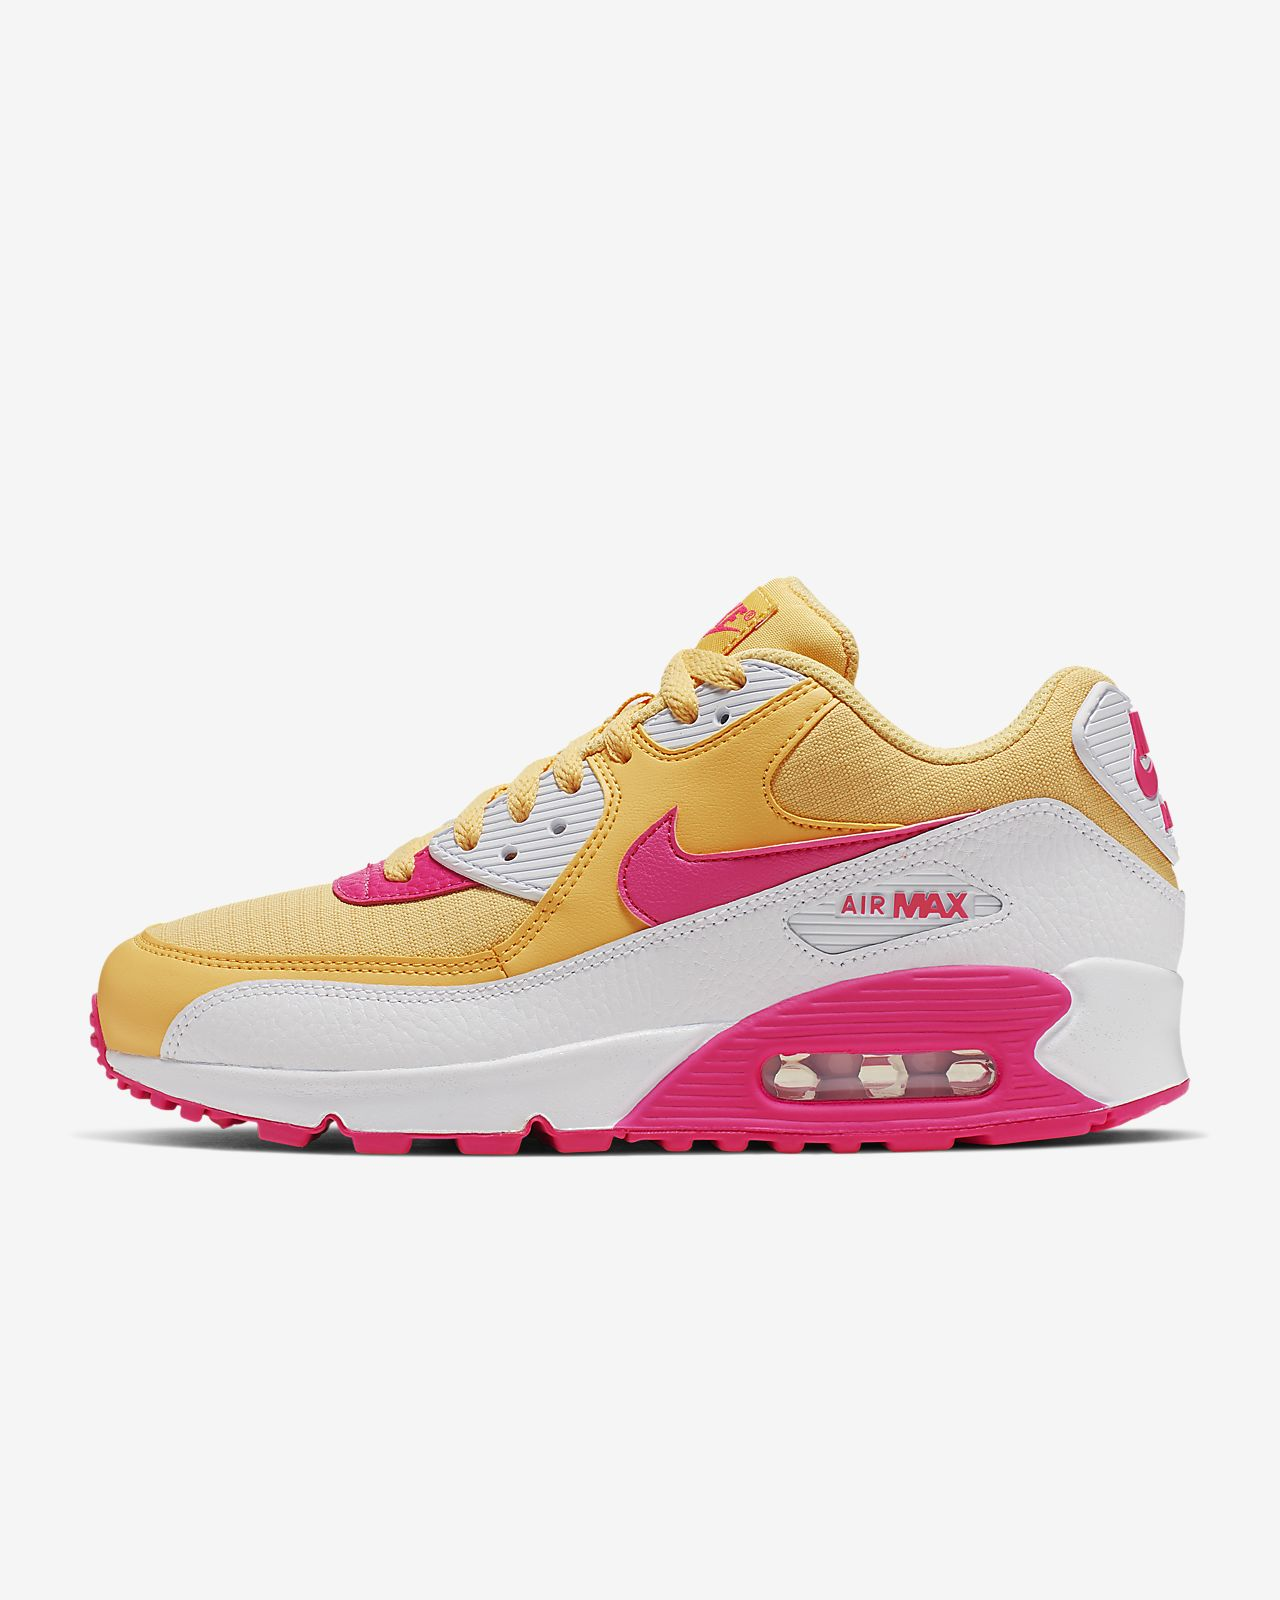 new style cd3bd 1aa93 ... Nike Air Max 90 Women s Shoe